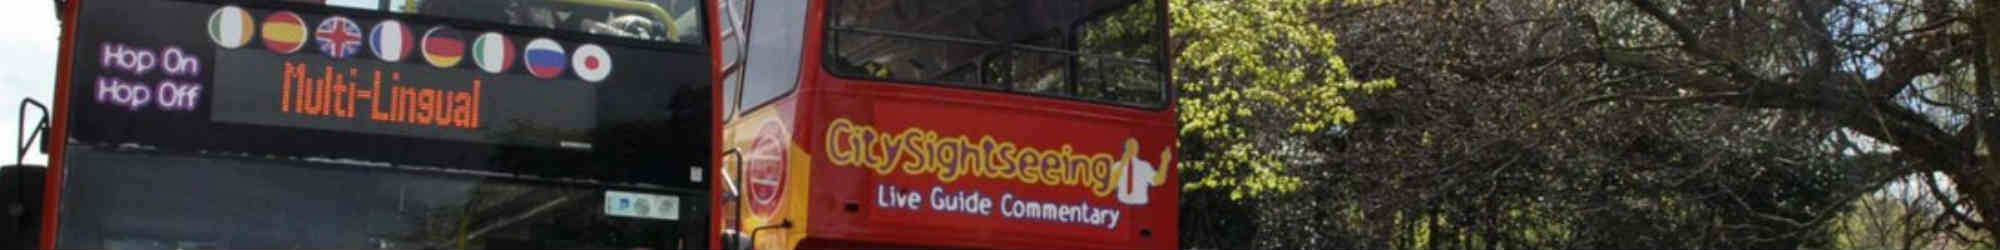 City Sightseeing Dublin Hop-on-Hop-off (24 hours)